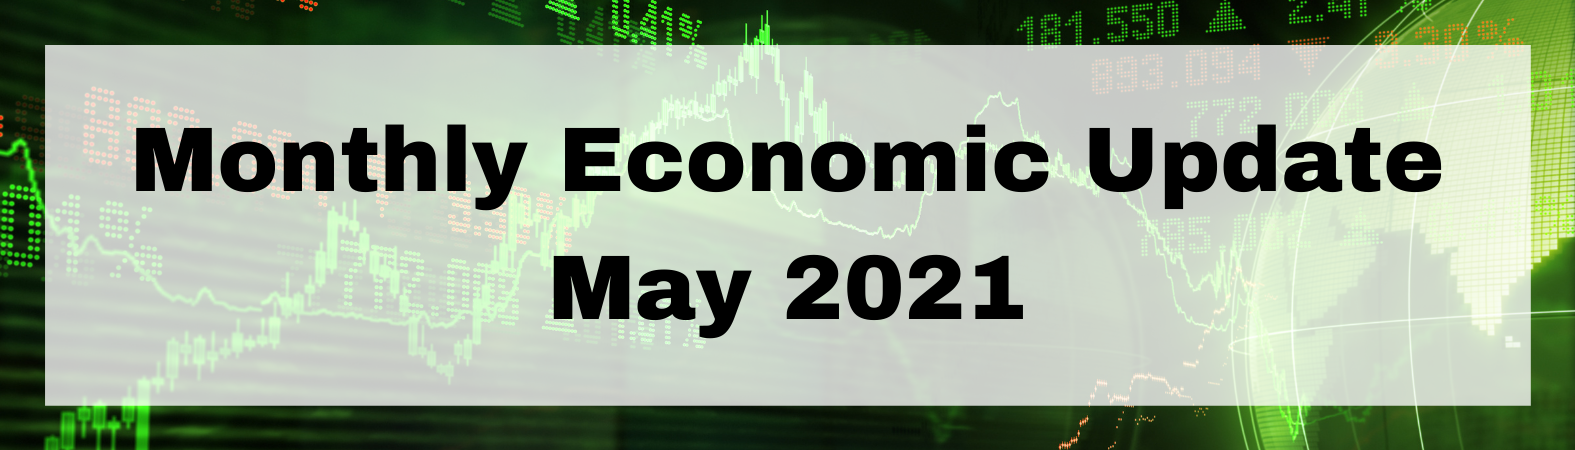 Monthly Economic Update May 2021 Thumbnail